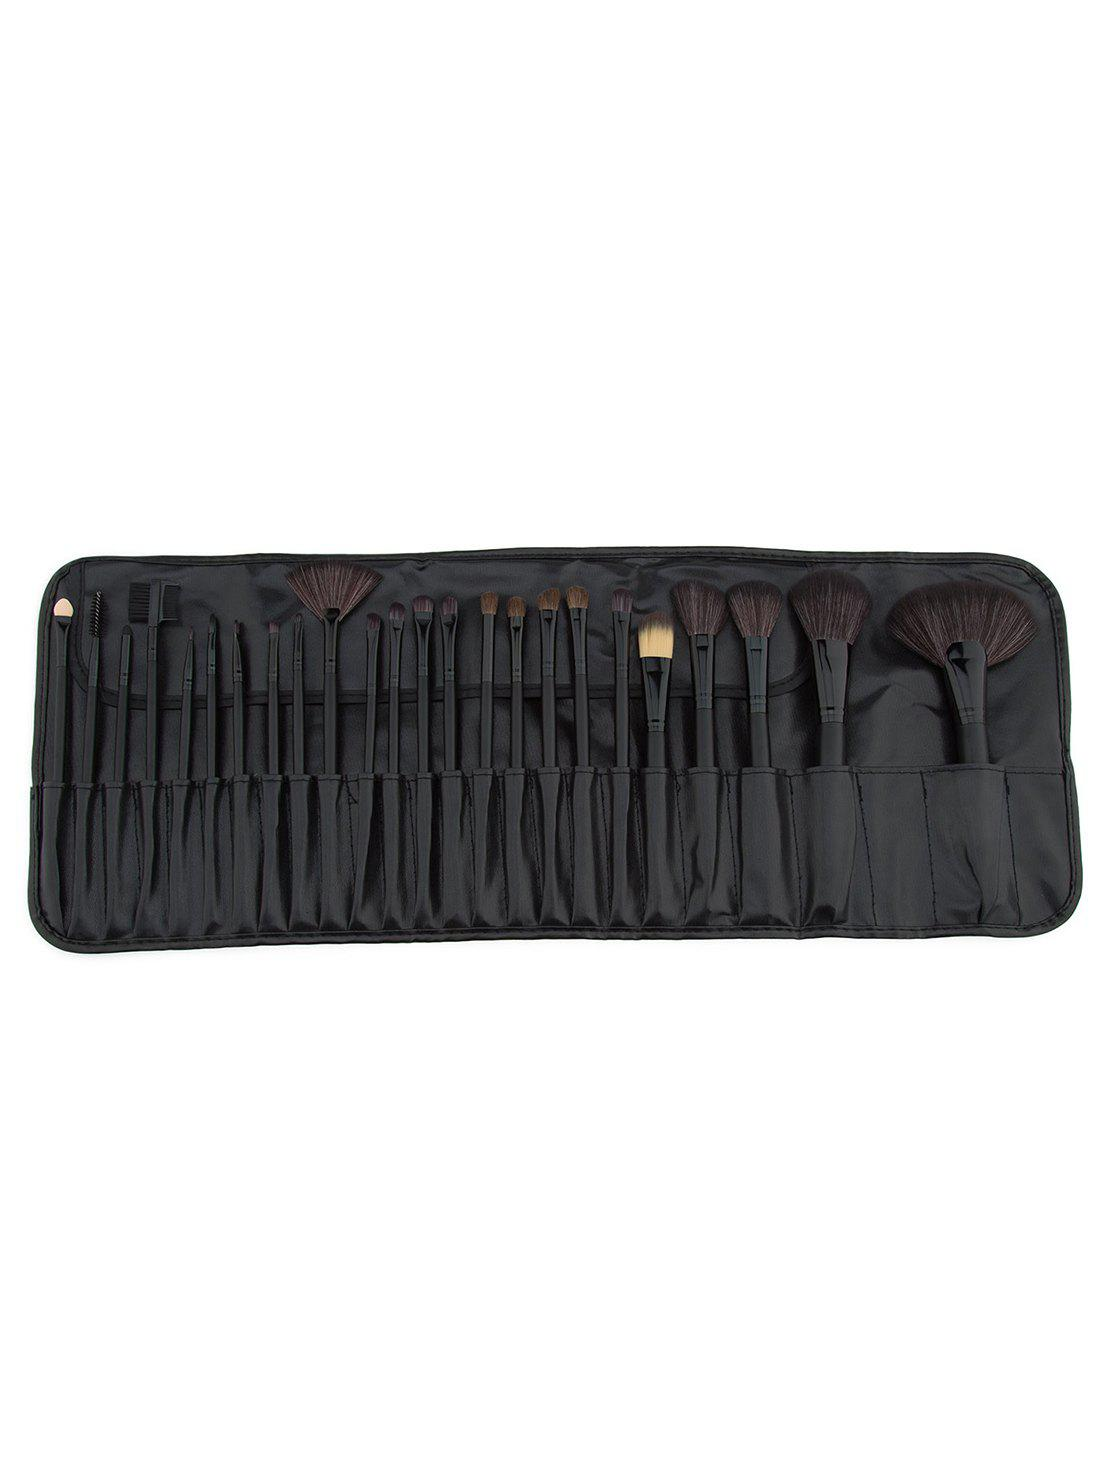 Beauty 24Pcs Cosmetic Brush Collection with Brush Storage Bag